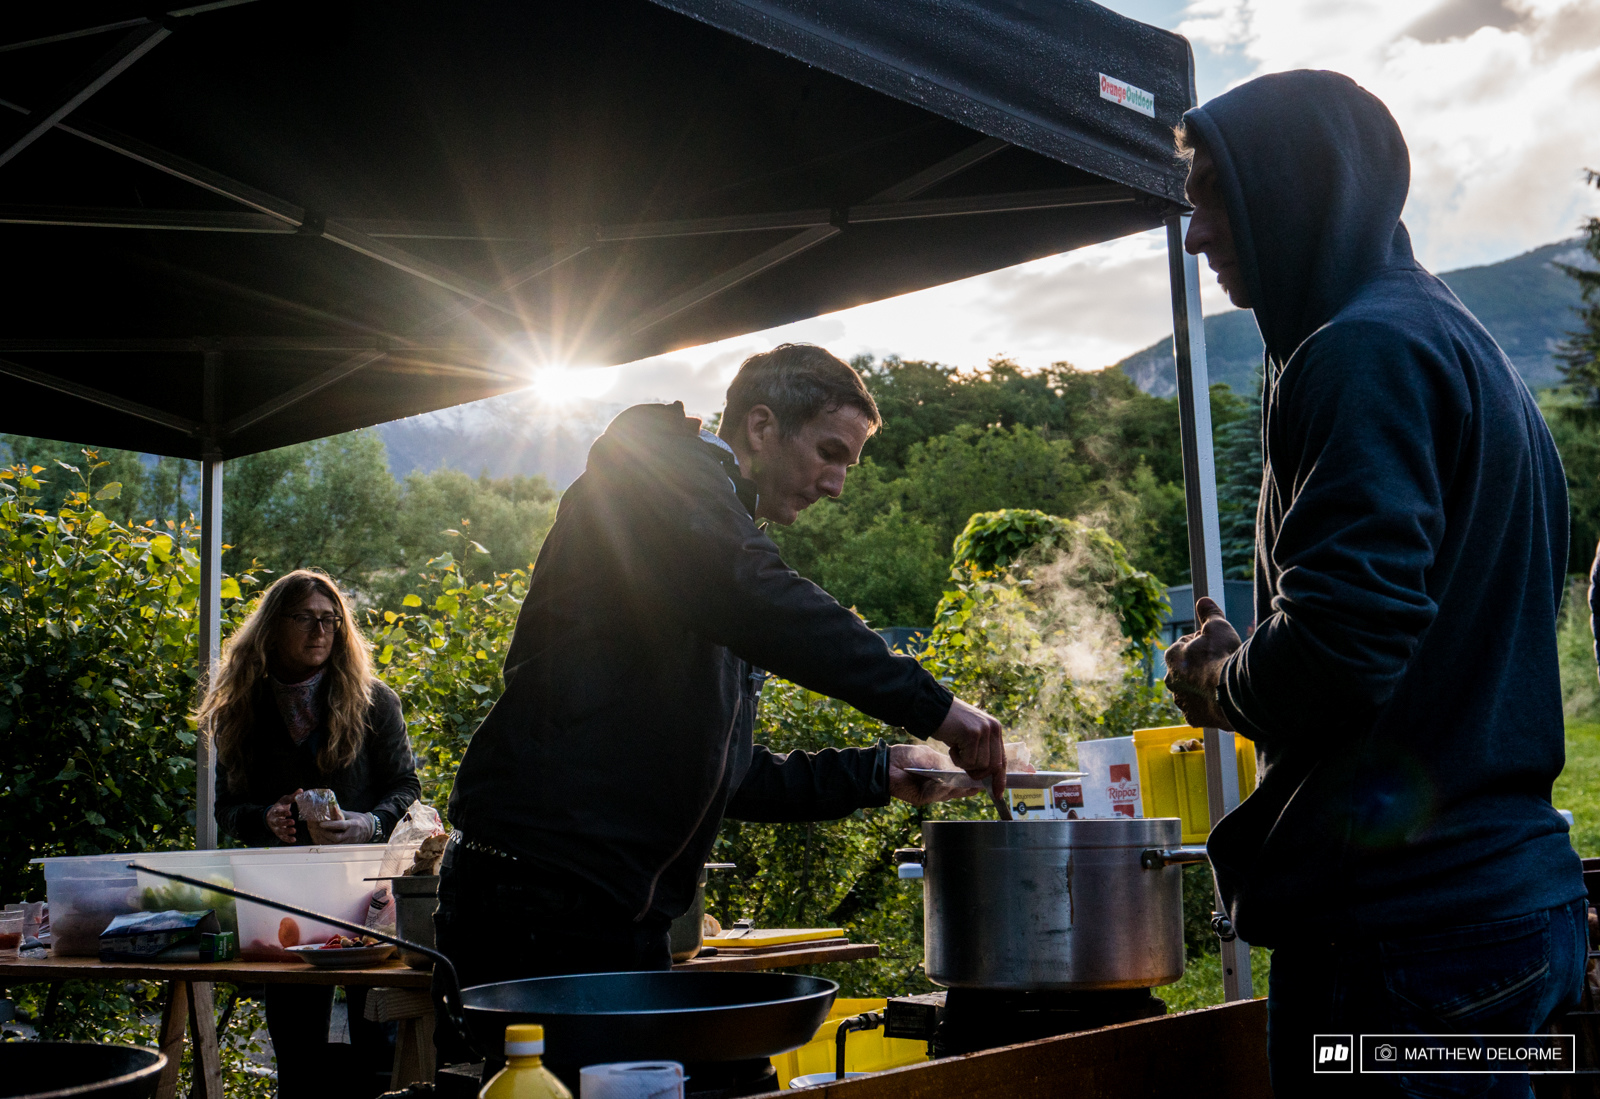 The TP staff have have hot breakfast and dinner waiting every morning and evening. The amount of food they churn out for the riders and staff is mind boggling. They keep us going strong.